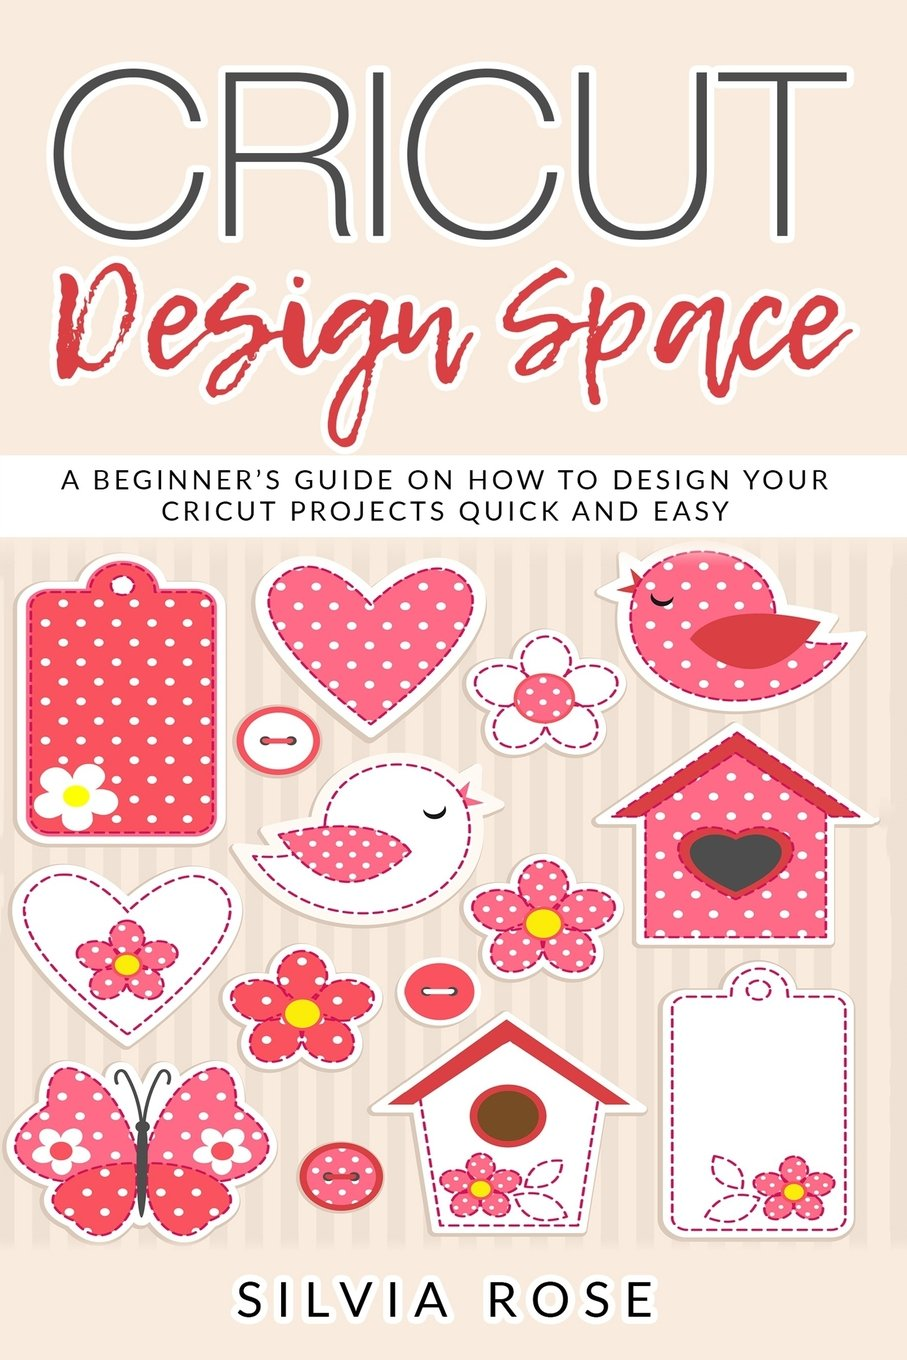 Cricut Design Space: A beginner's guide on how to design your Cricut projects quick and easy Paperback – May 12, 2018 Silvia Rose 1719079773